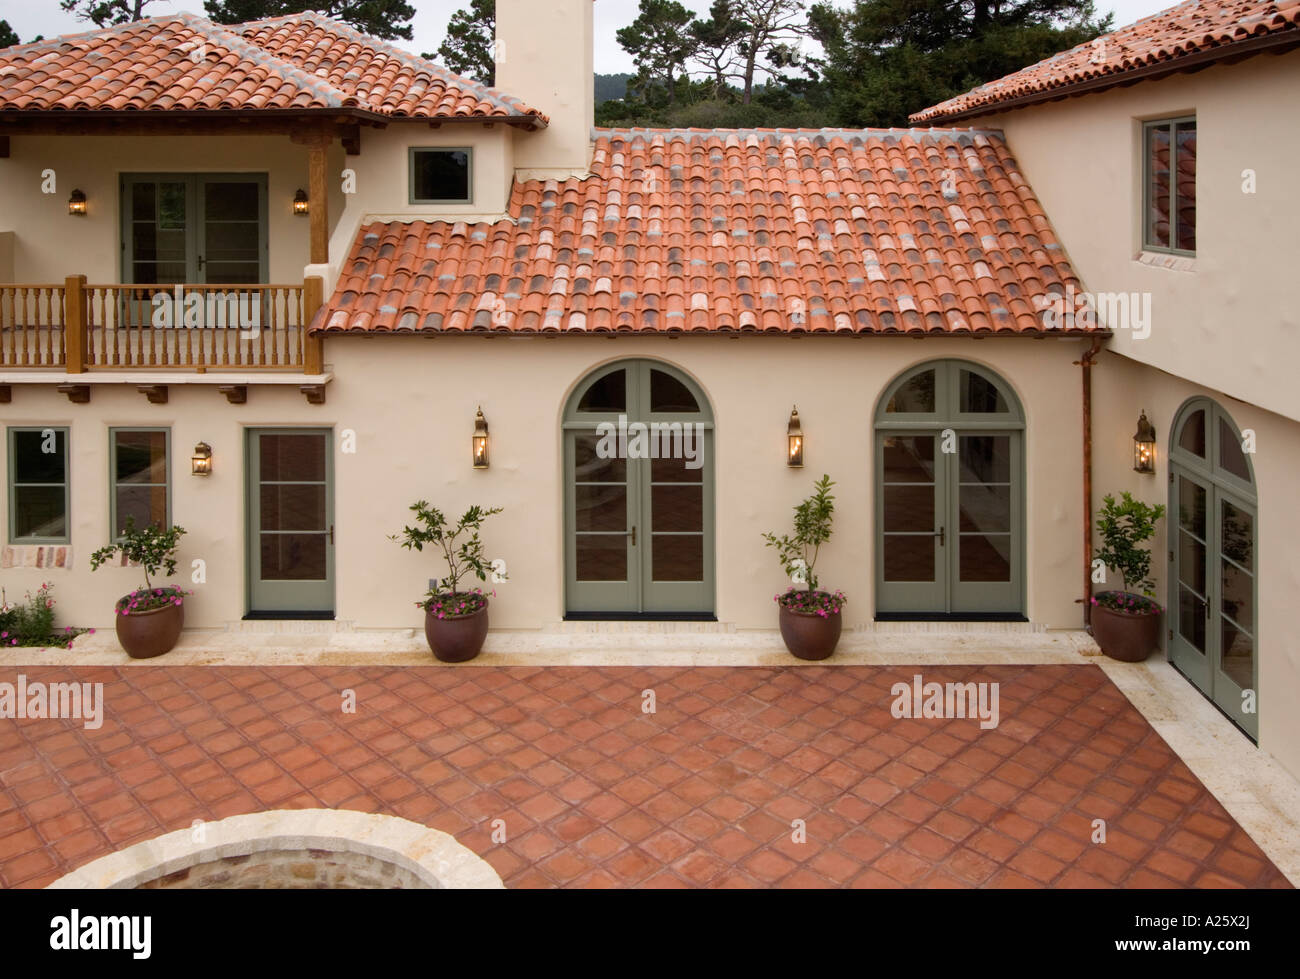 Greatest Houses With Ceramic Tile Roofing - Home & Furniture Design  WY62